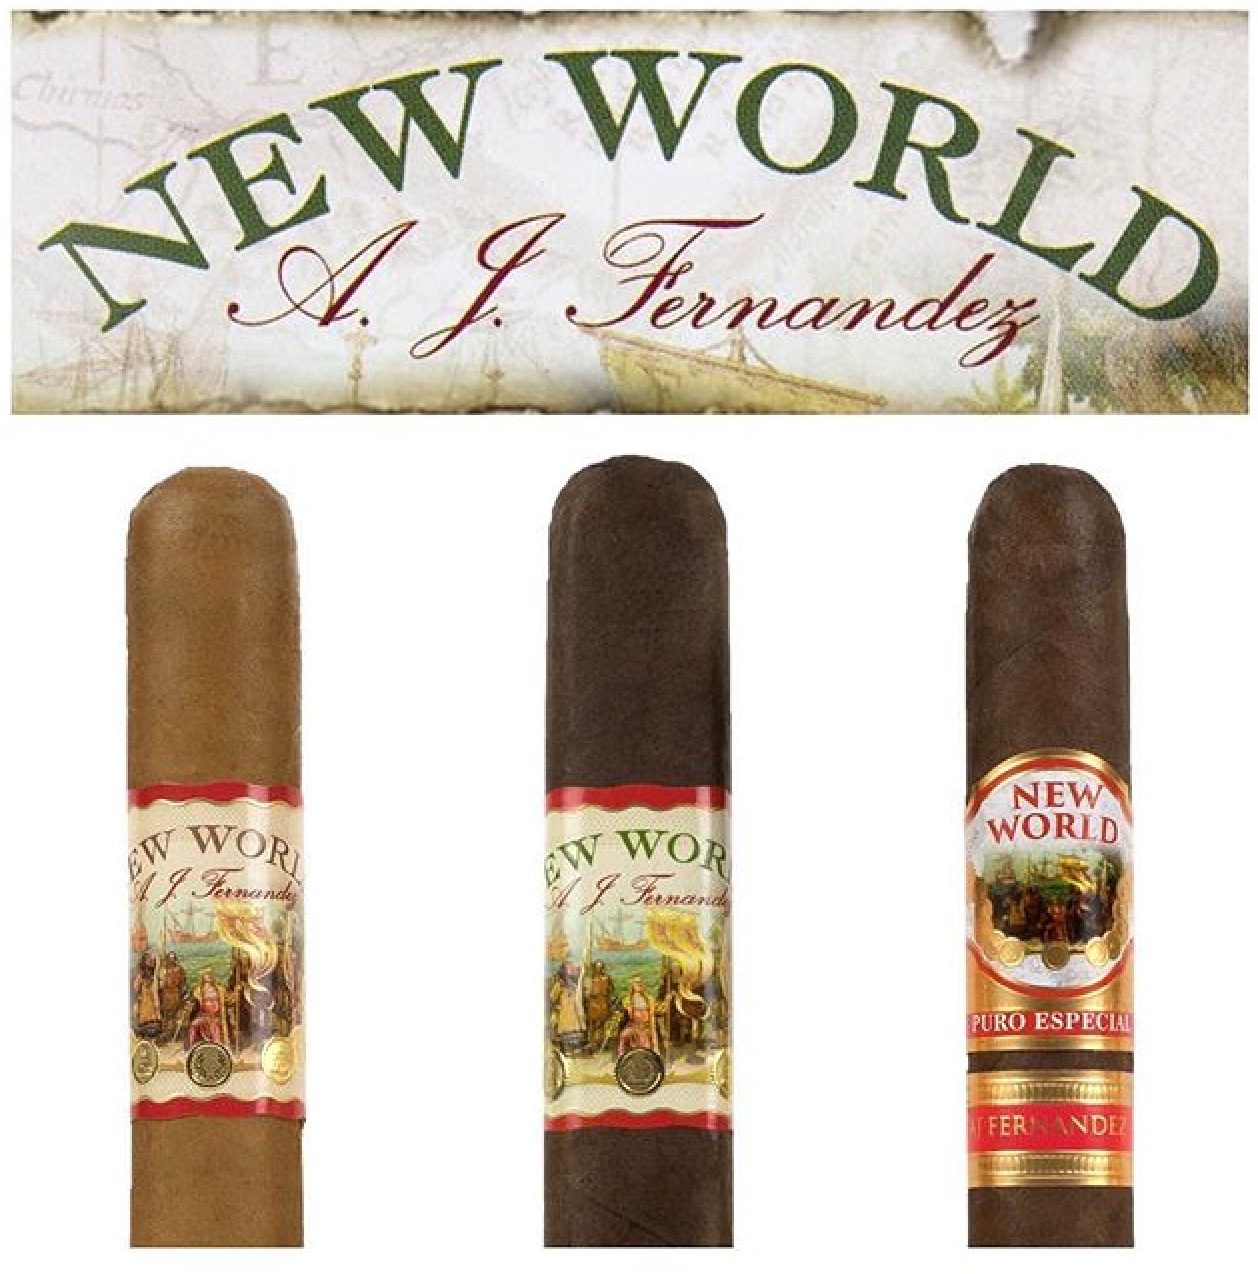 New World by AJ Fernandez Almirante, Belicoso - 5 Pack image